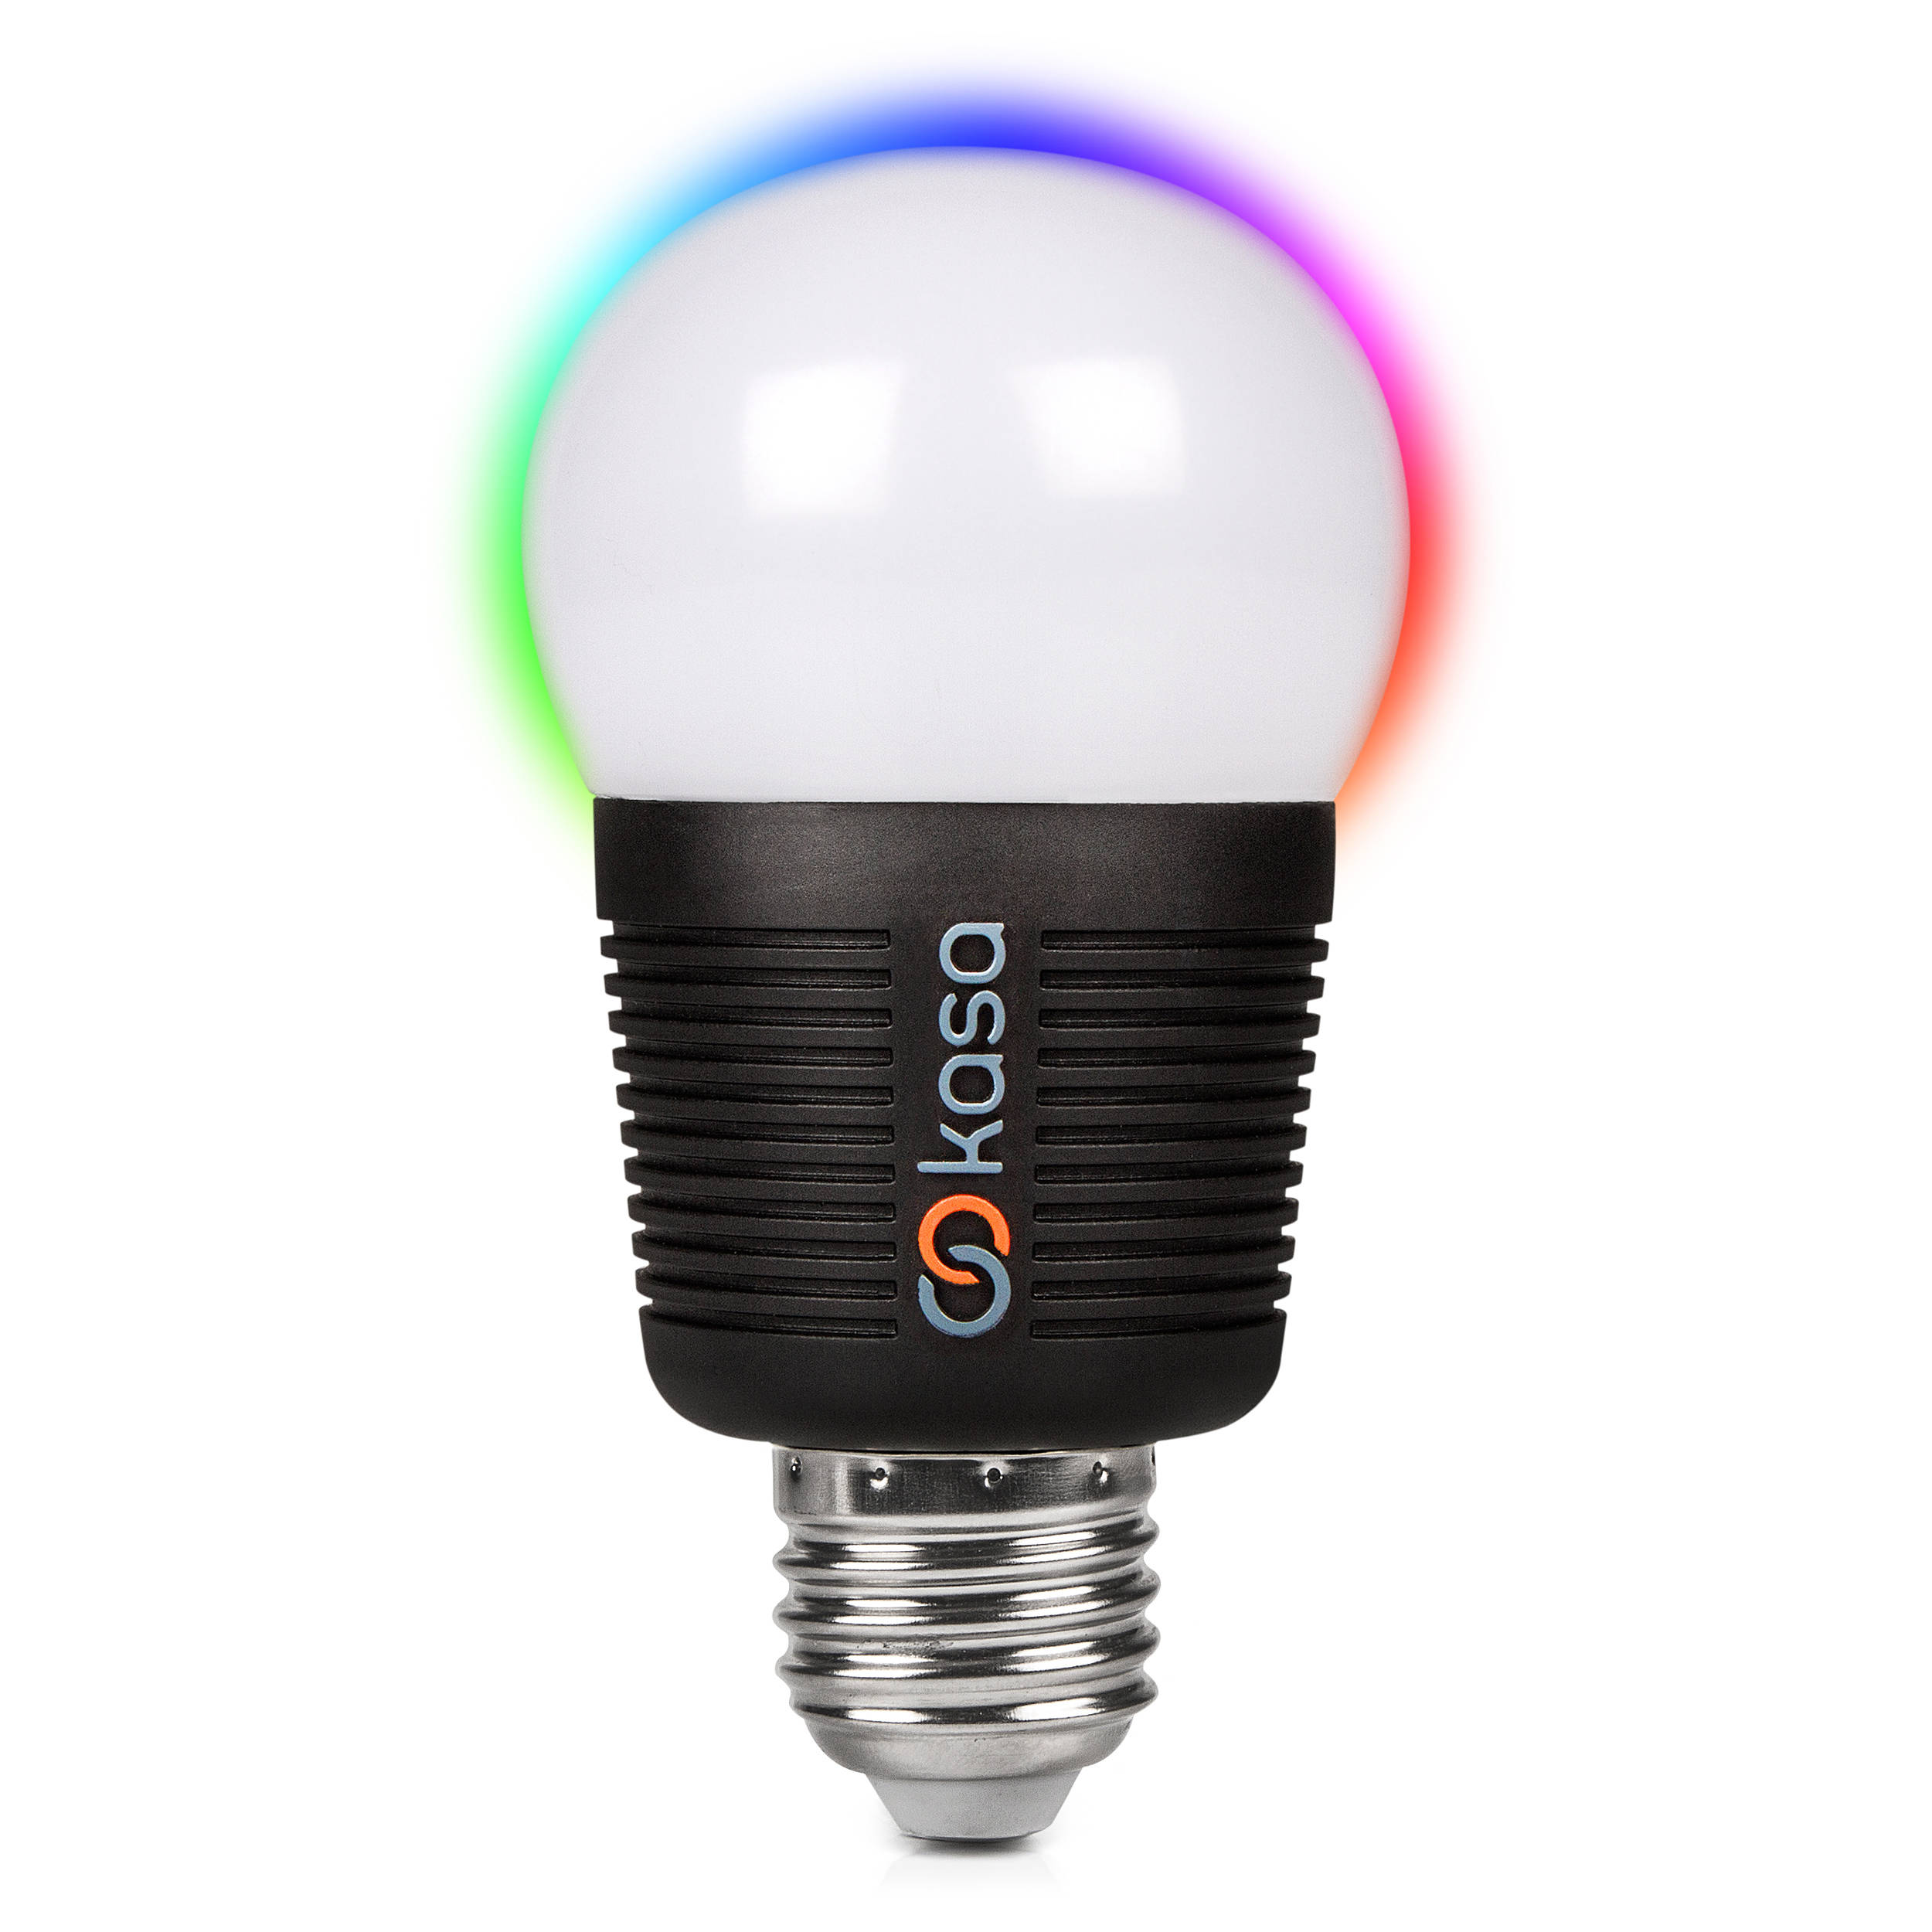 Image result for smart light bulb